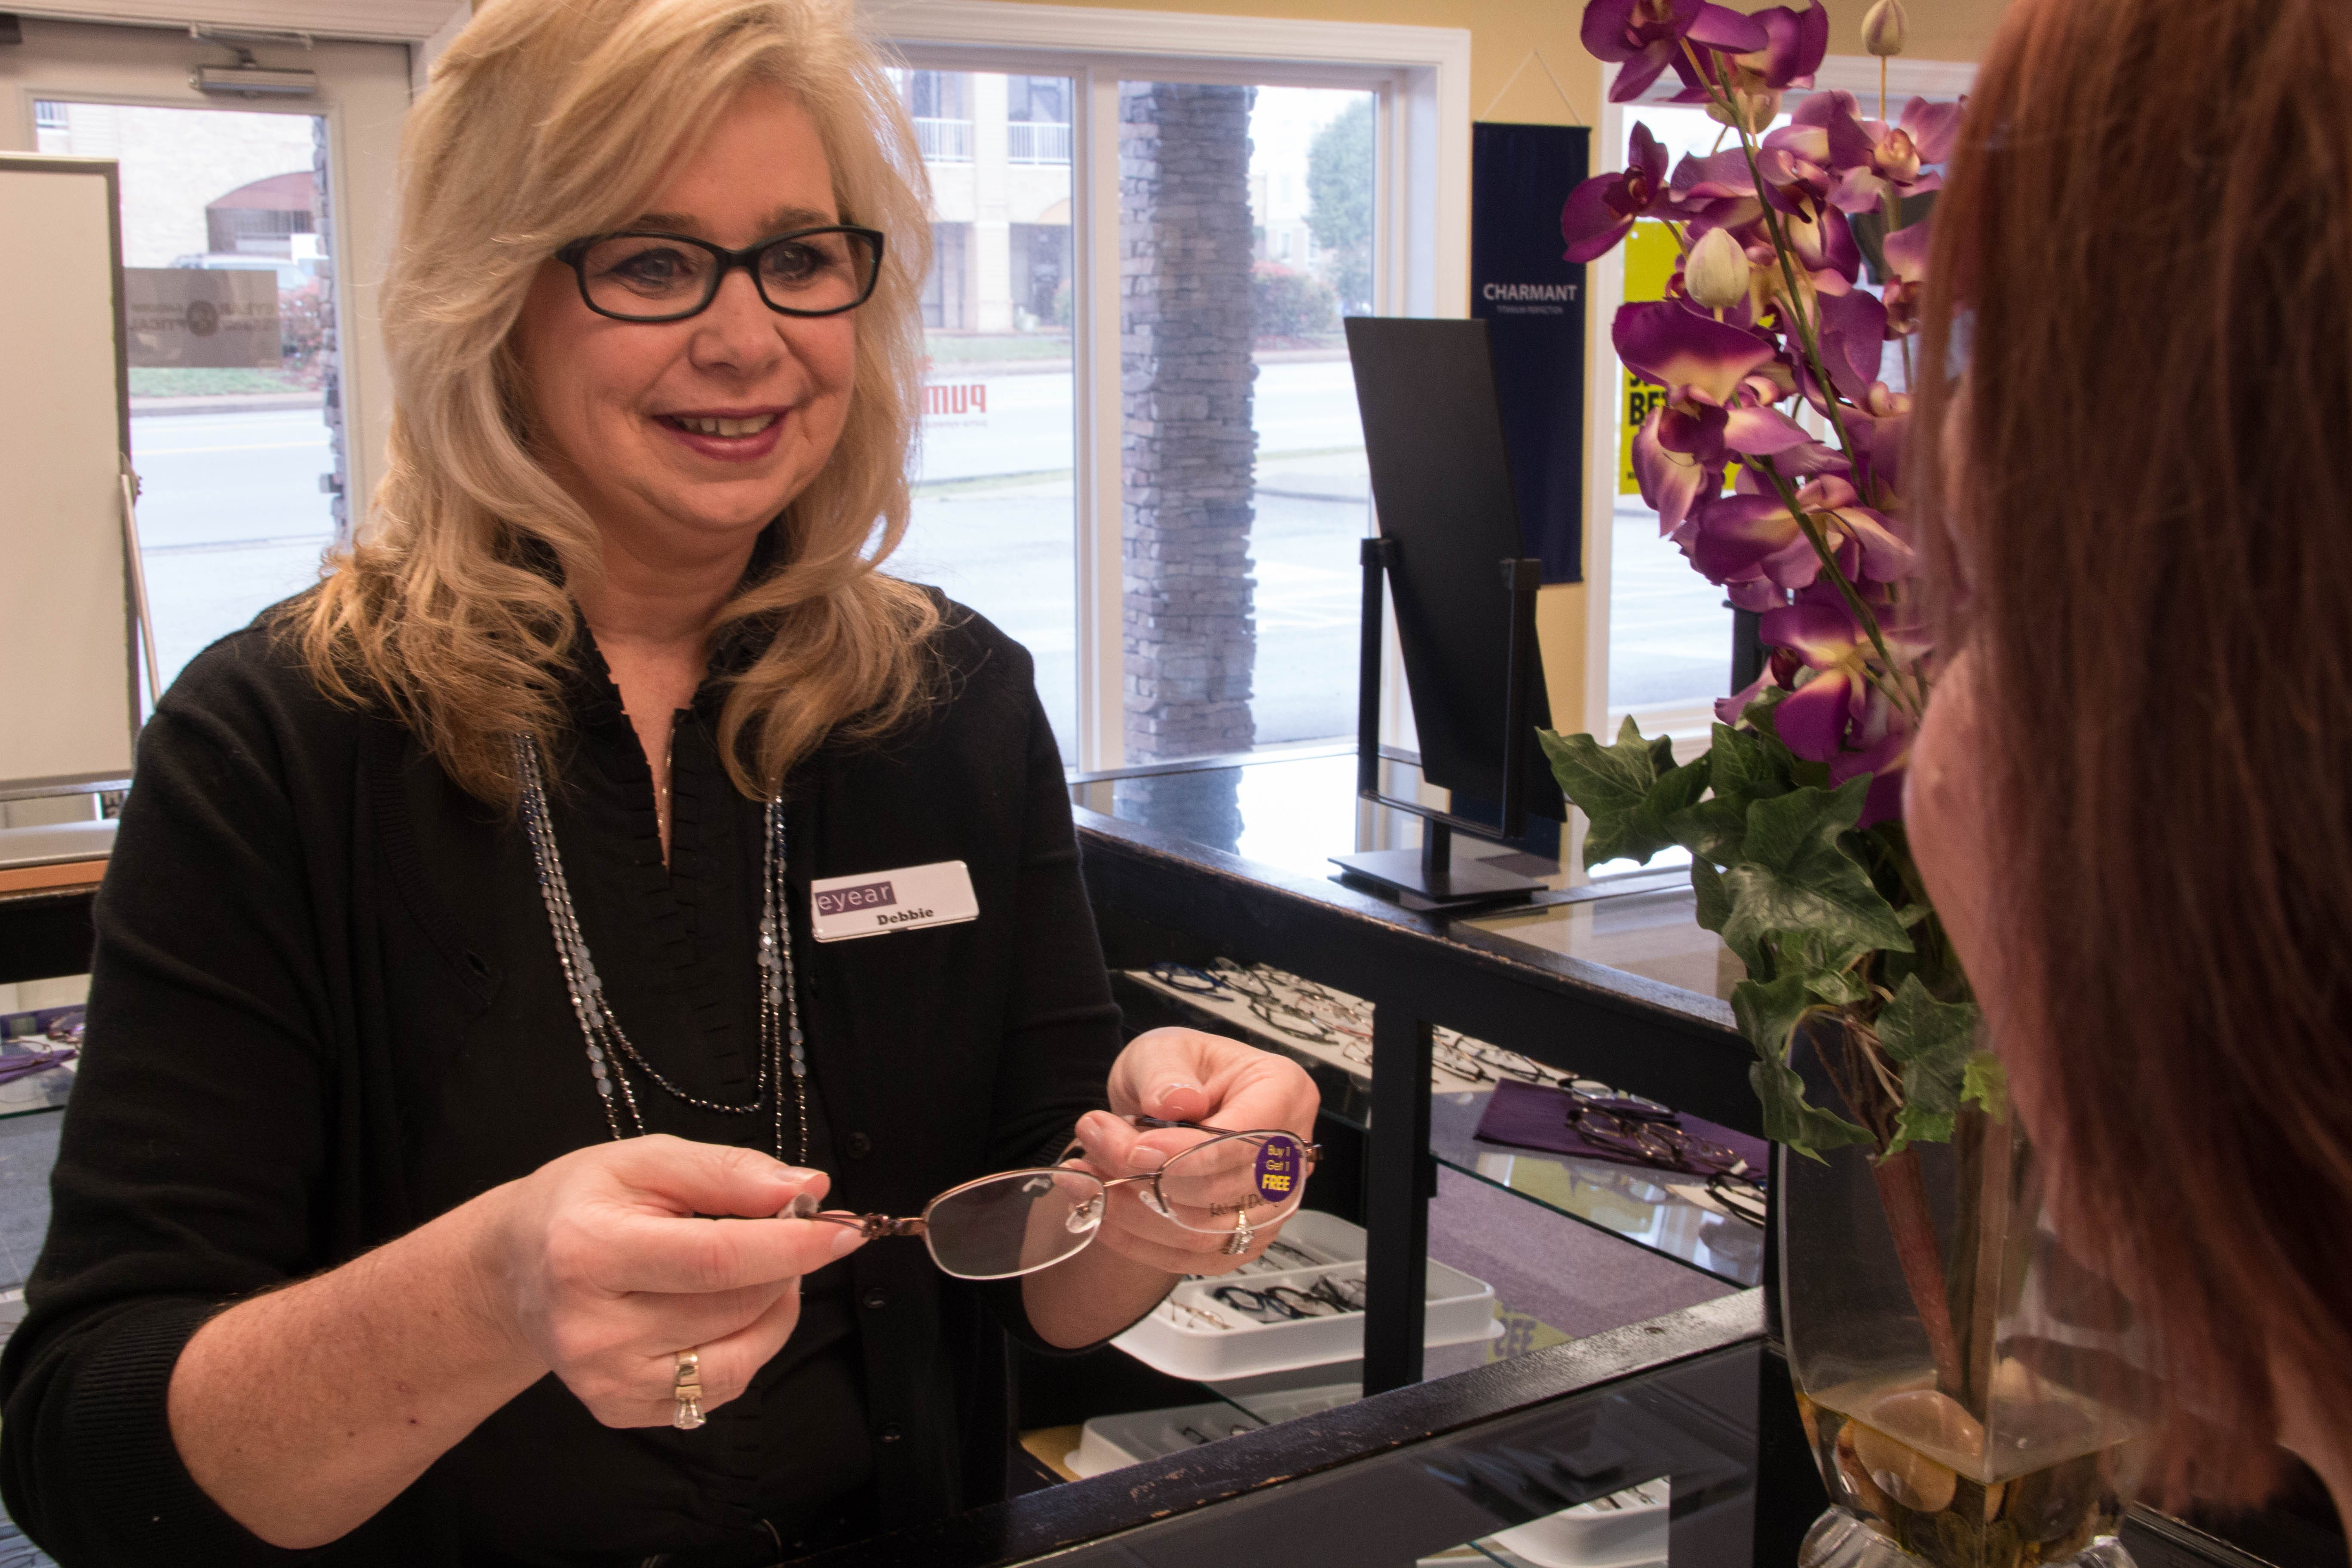 Eyeglasses and customer service